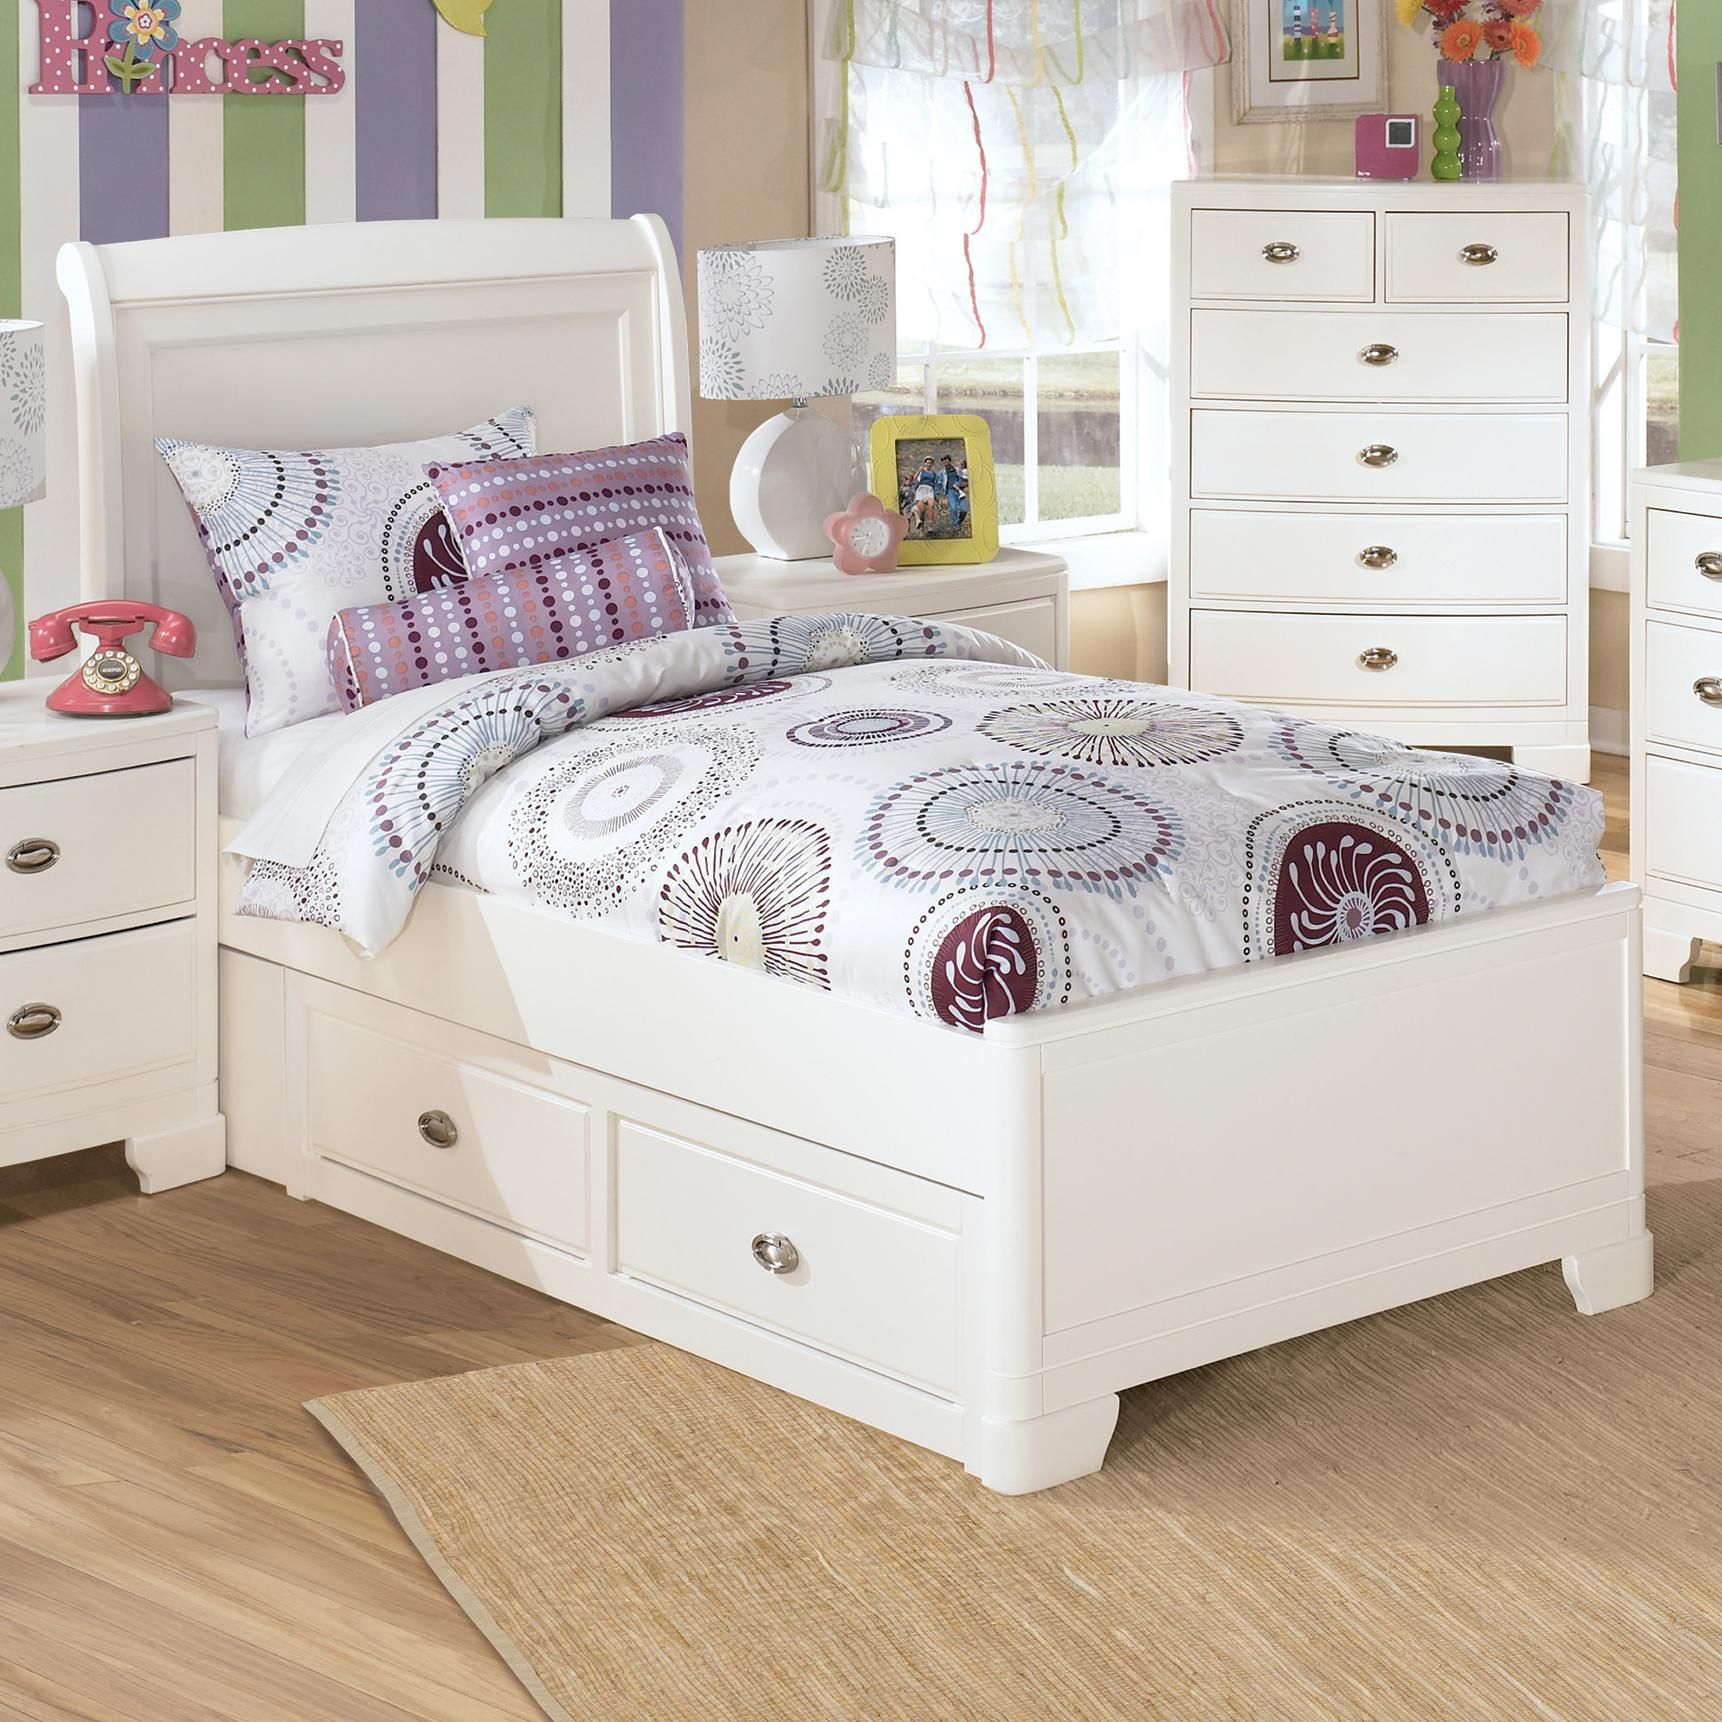 Alyn Full Bed With Sleigh Headboard 2 Storage Drawers By